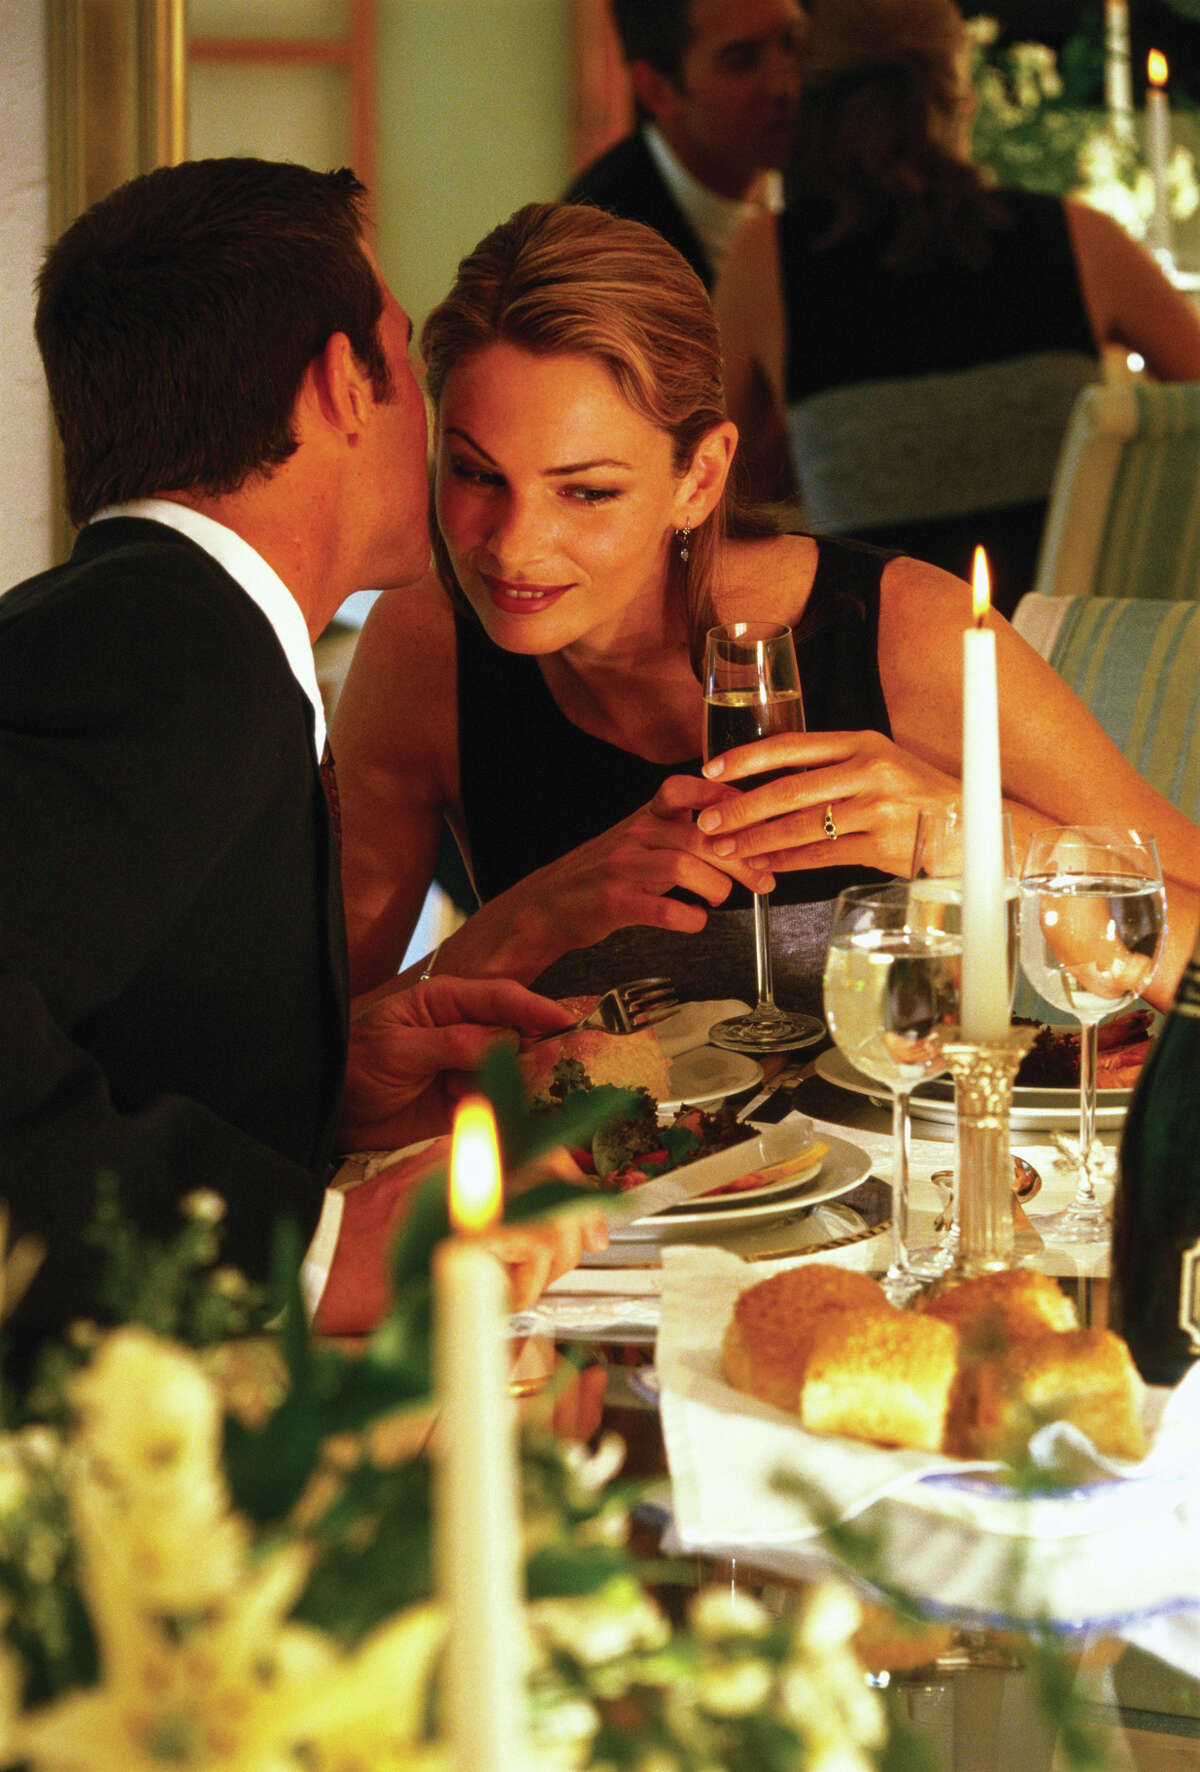 Valentine's Day is the time to be with a special someone - be it a love, friend or even family members. Area restaurants have gone all out this year, offering everything from exclusive dinners to casual eats. Some listings are per person and others are per couple, so read descriptions carefully. Click ahead for your dining options guide in San Antonio.